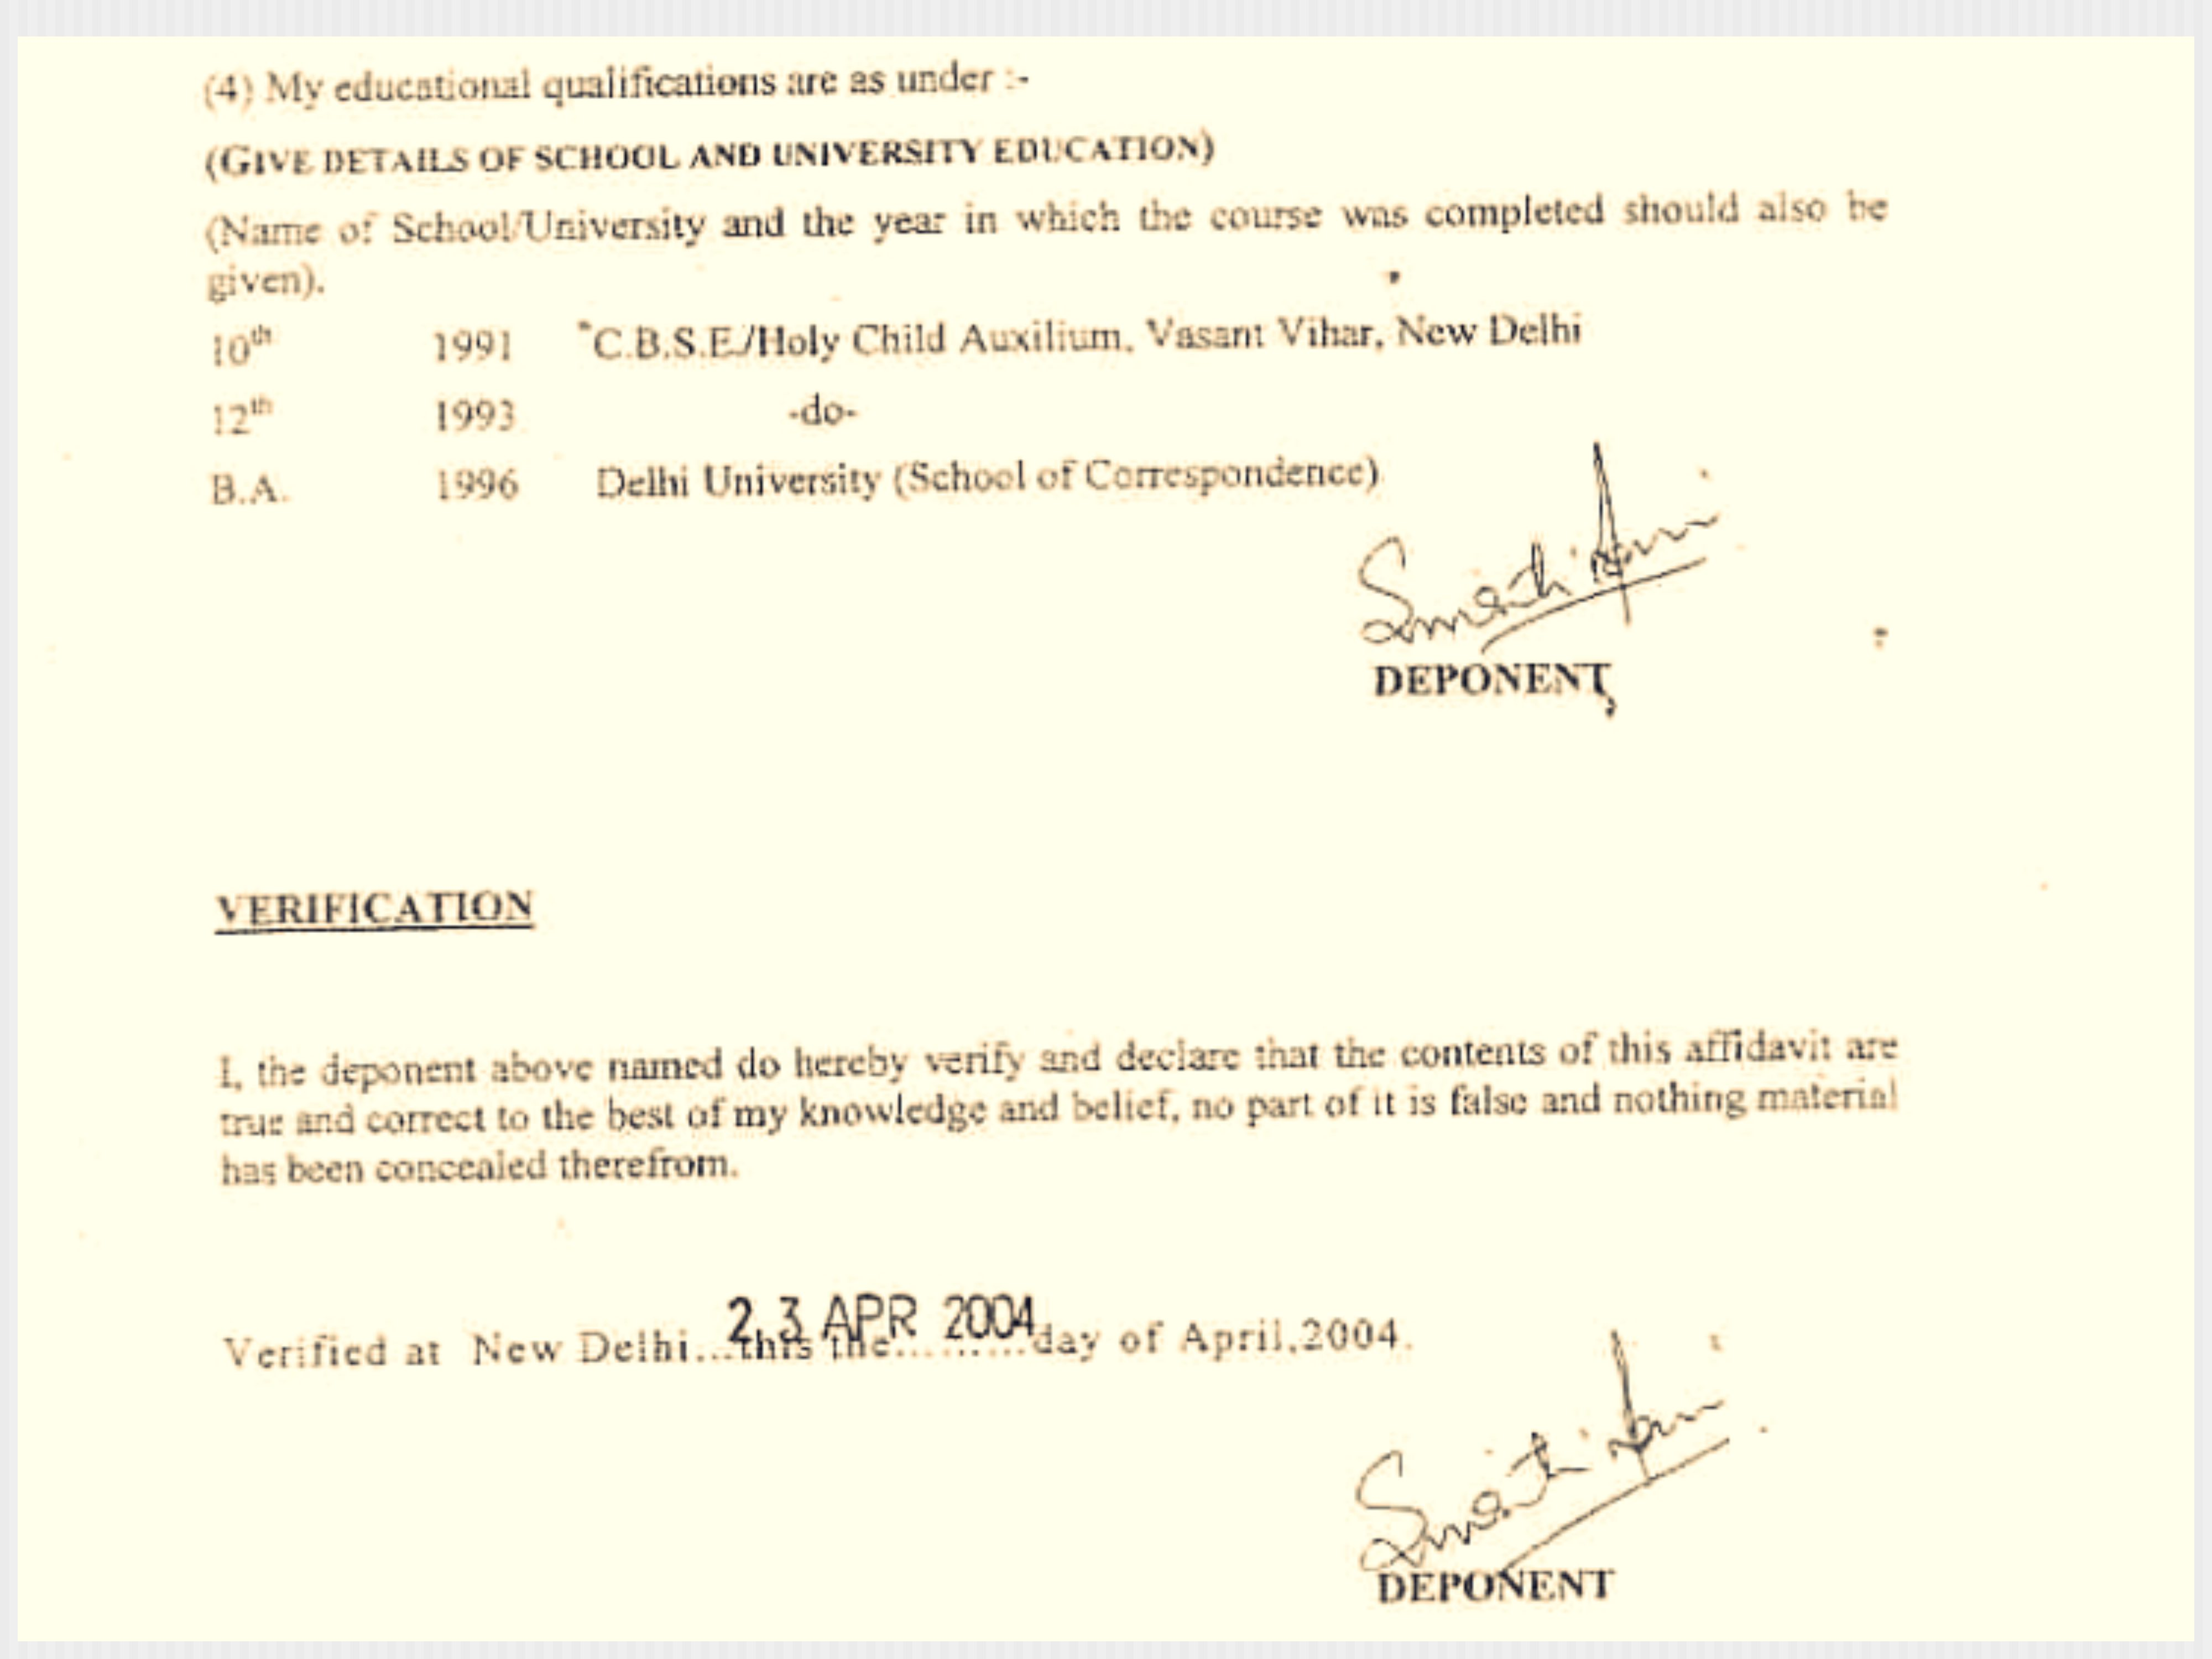 Excerpt from Smriti Irani's 2004 election affidavit. The full affidavit may be accessed at the ADR website.